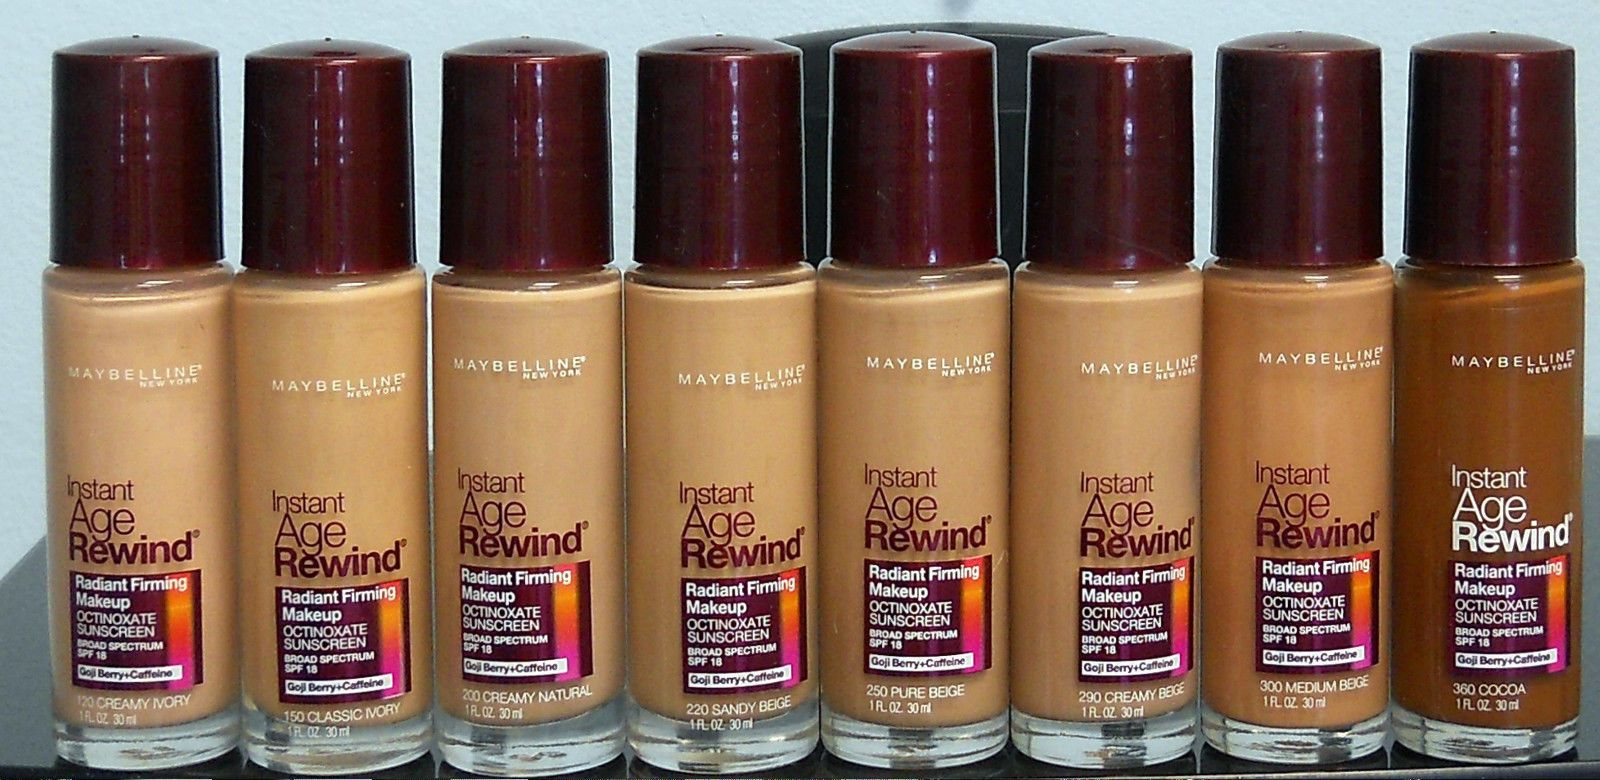 Maybelline Instant Age Rewind Radiant Firming Makeup Choose Your Color New Maybelline Instant Age Rewind Age Rewind Maybelline